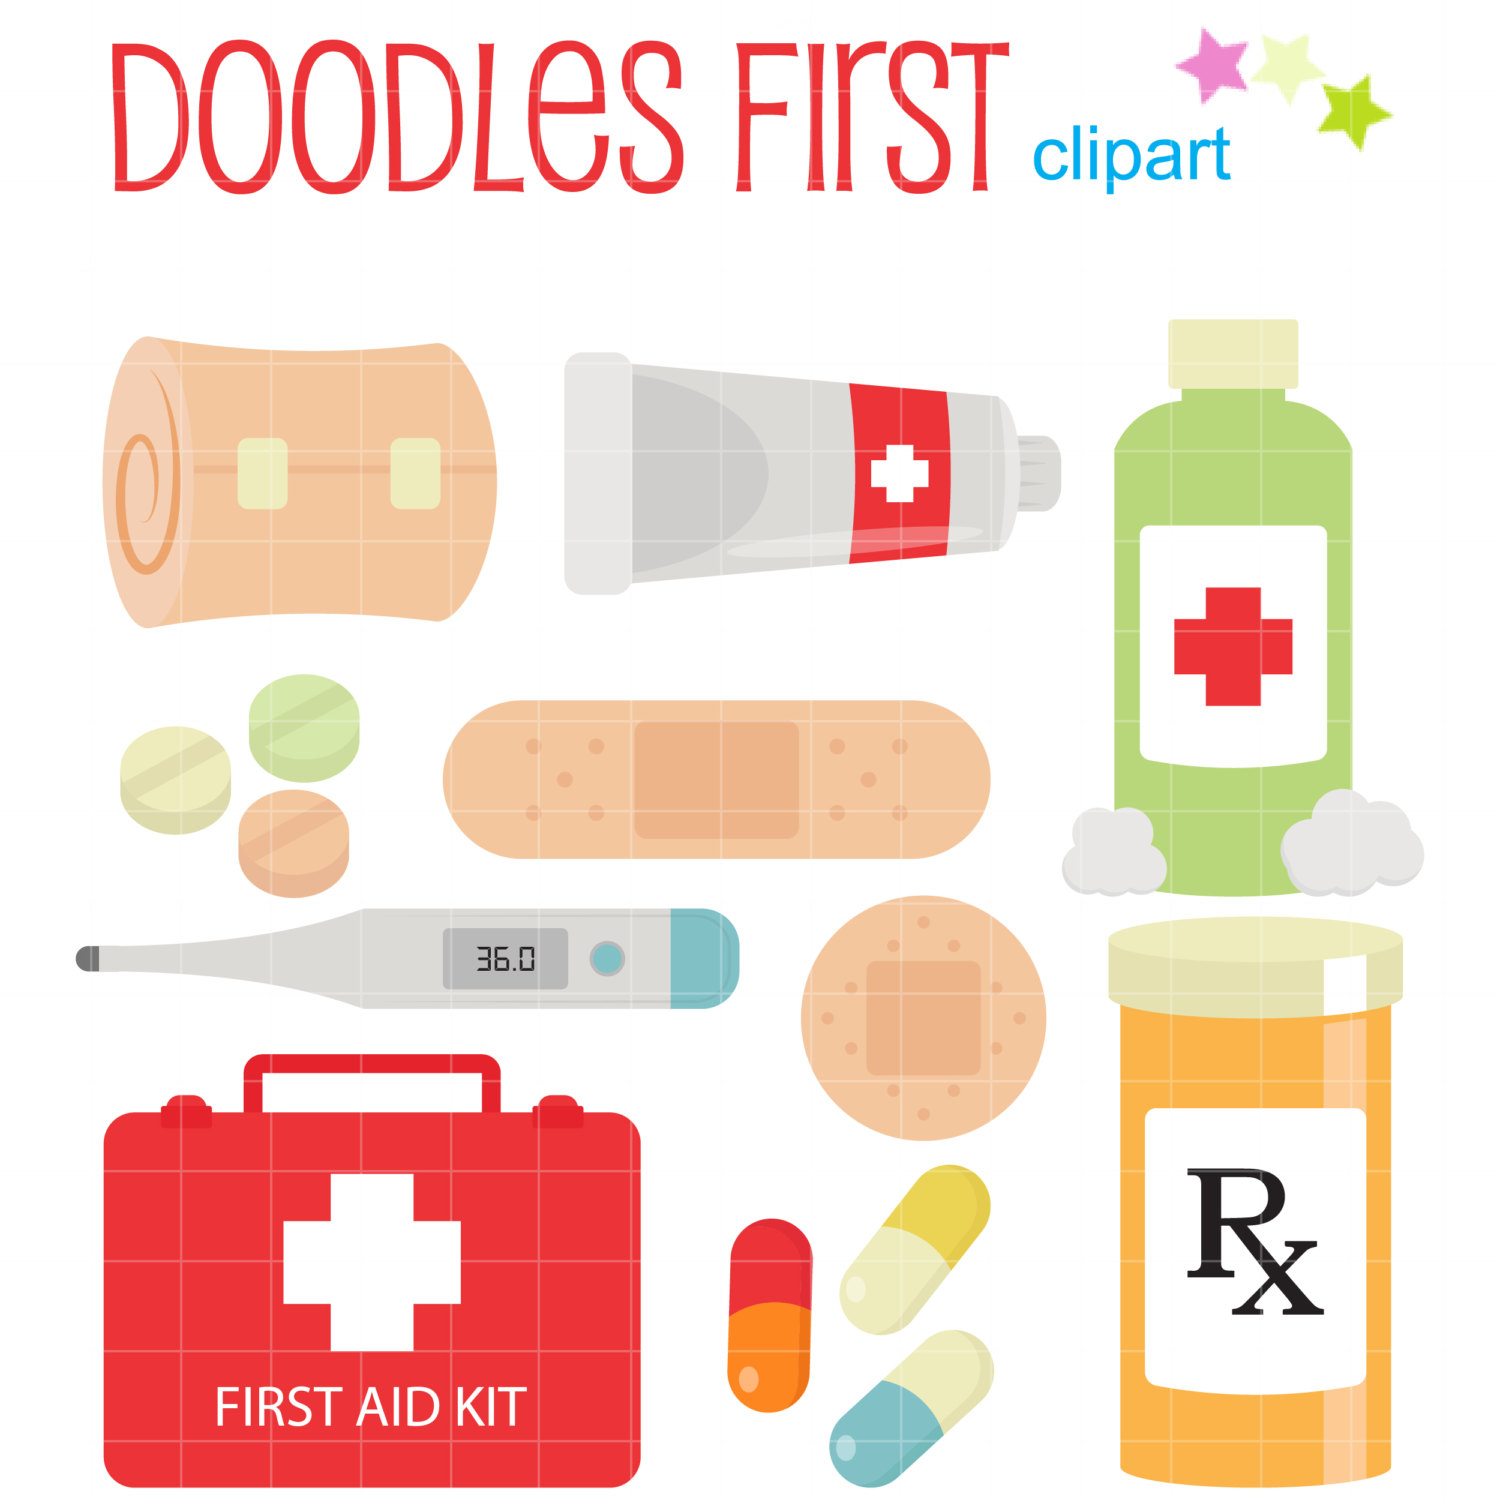 Fist clipart aid kit For Paper Art Making Kit